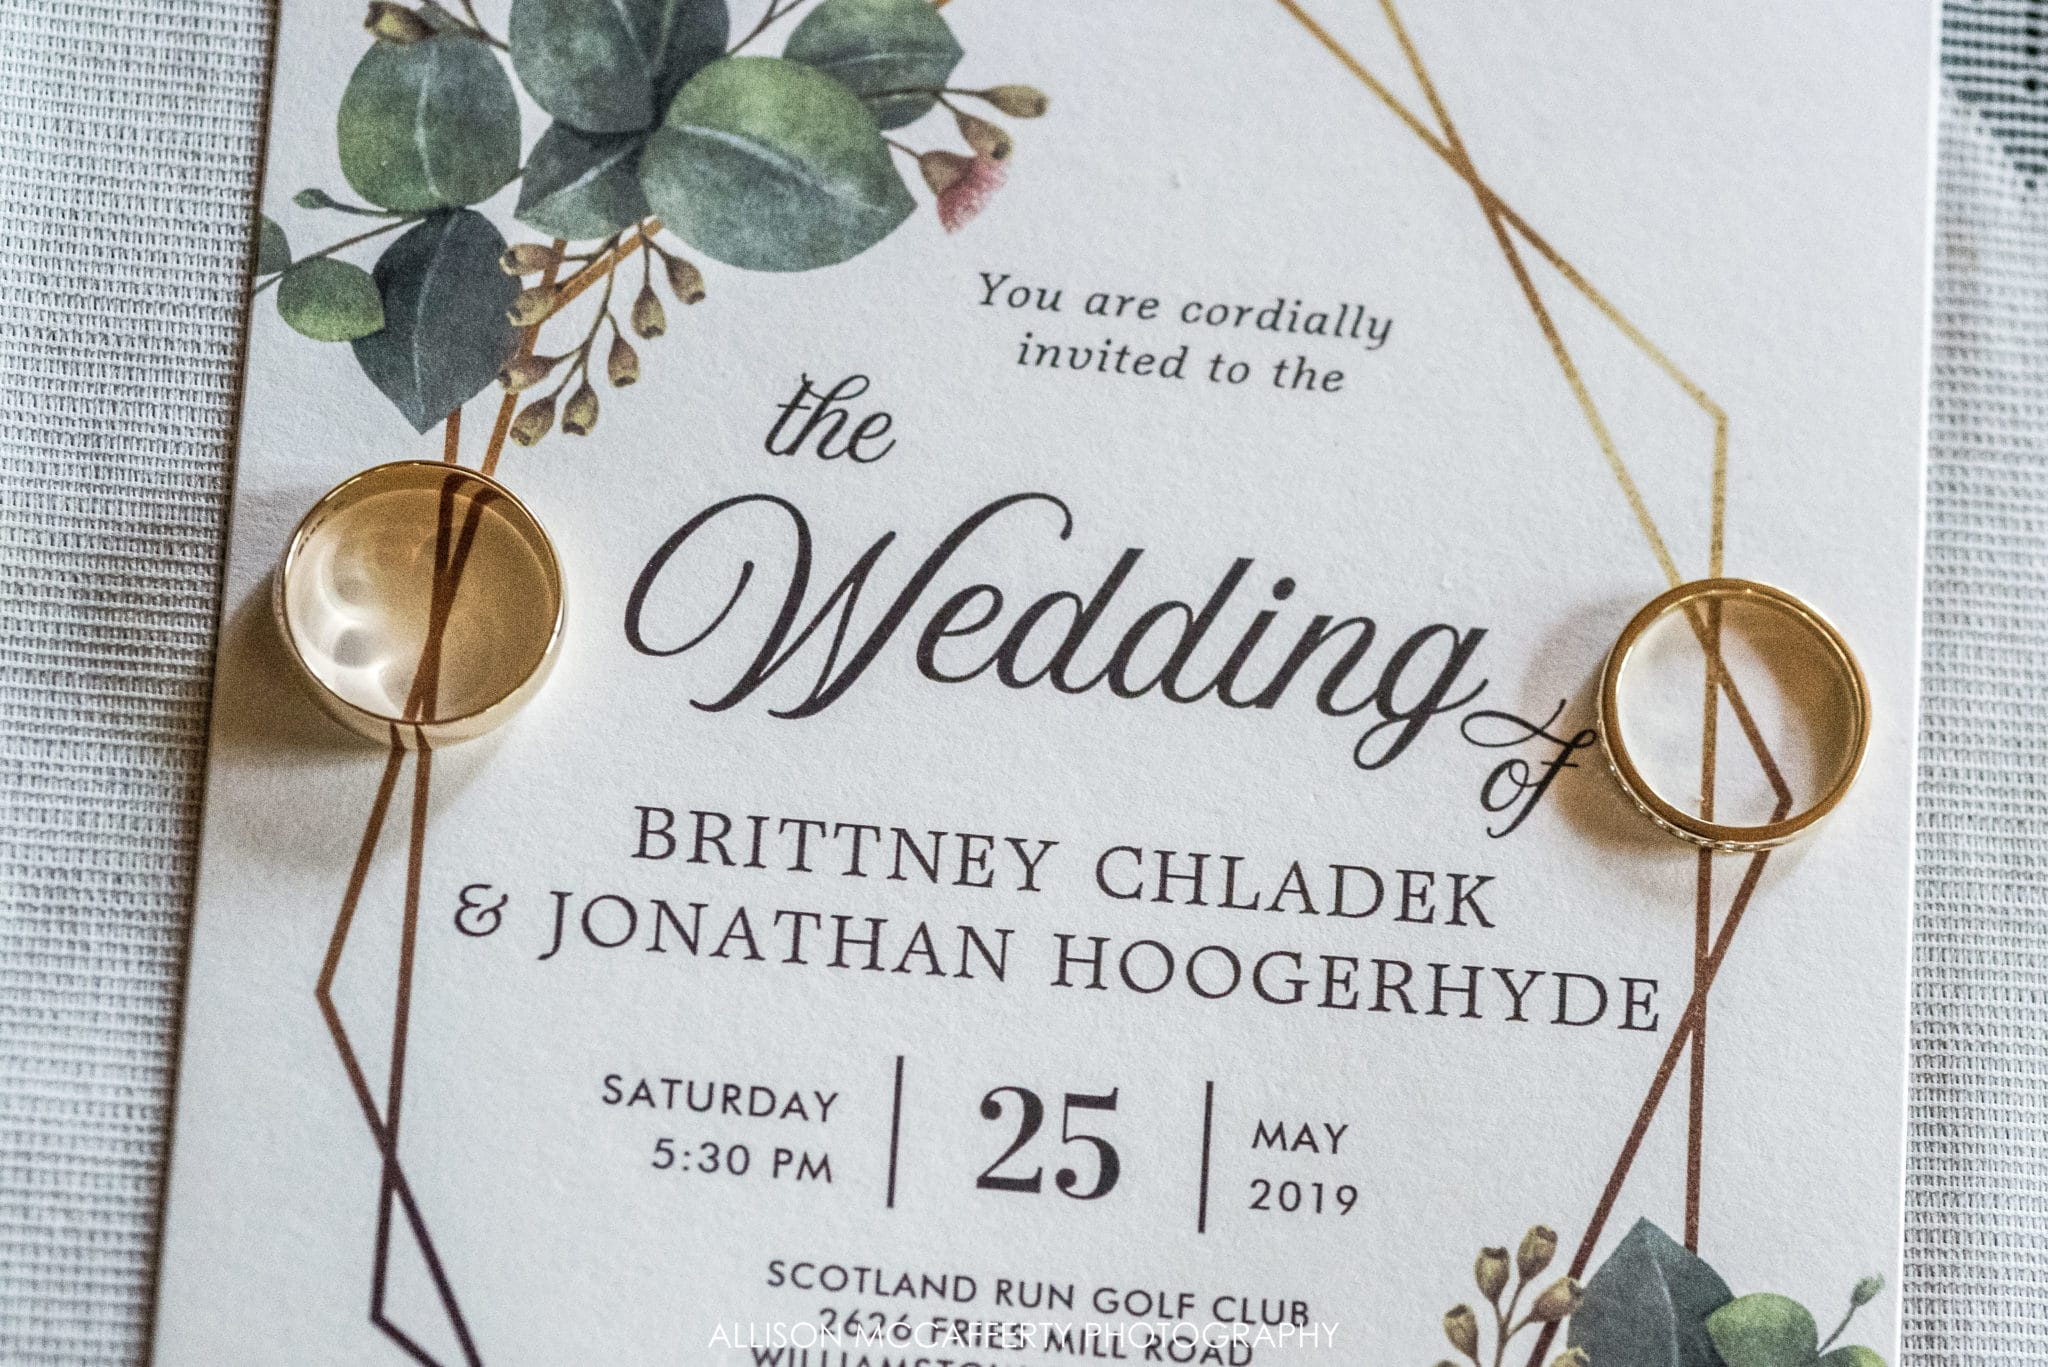 Wedding invitation with gold wedding rings